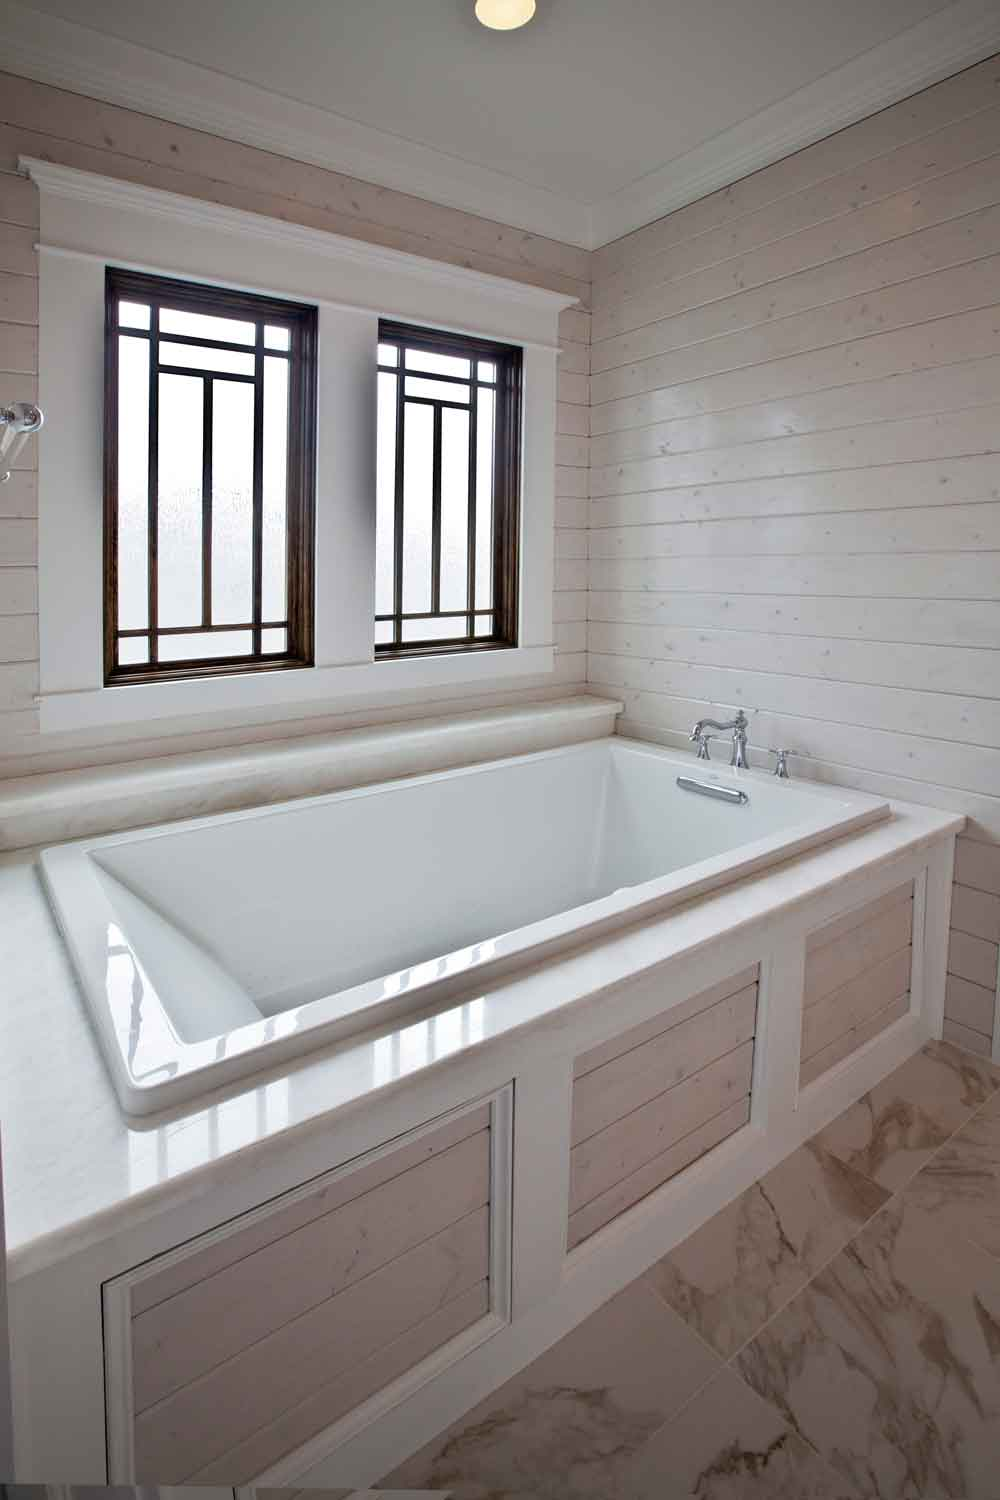 Beautiful new bathroom tour cedar hill farmhouse for New tub over old tub